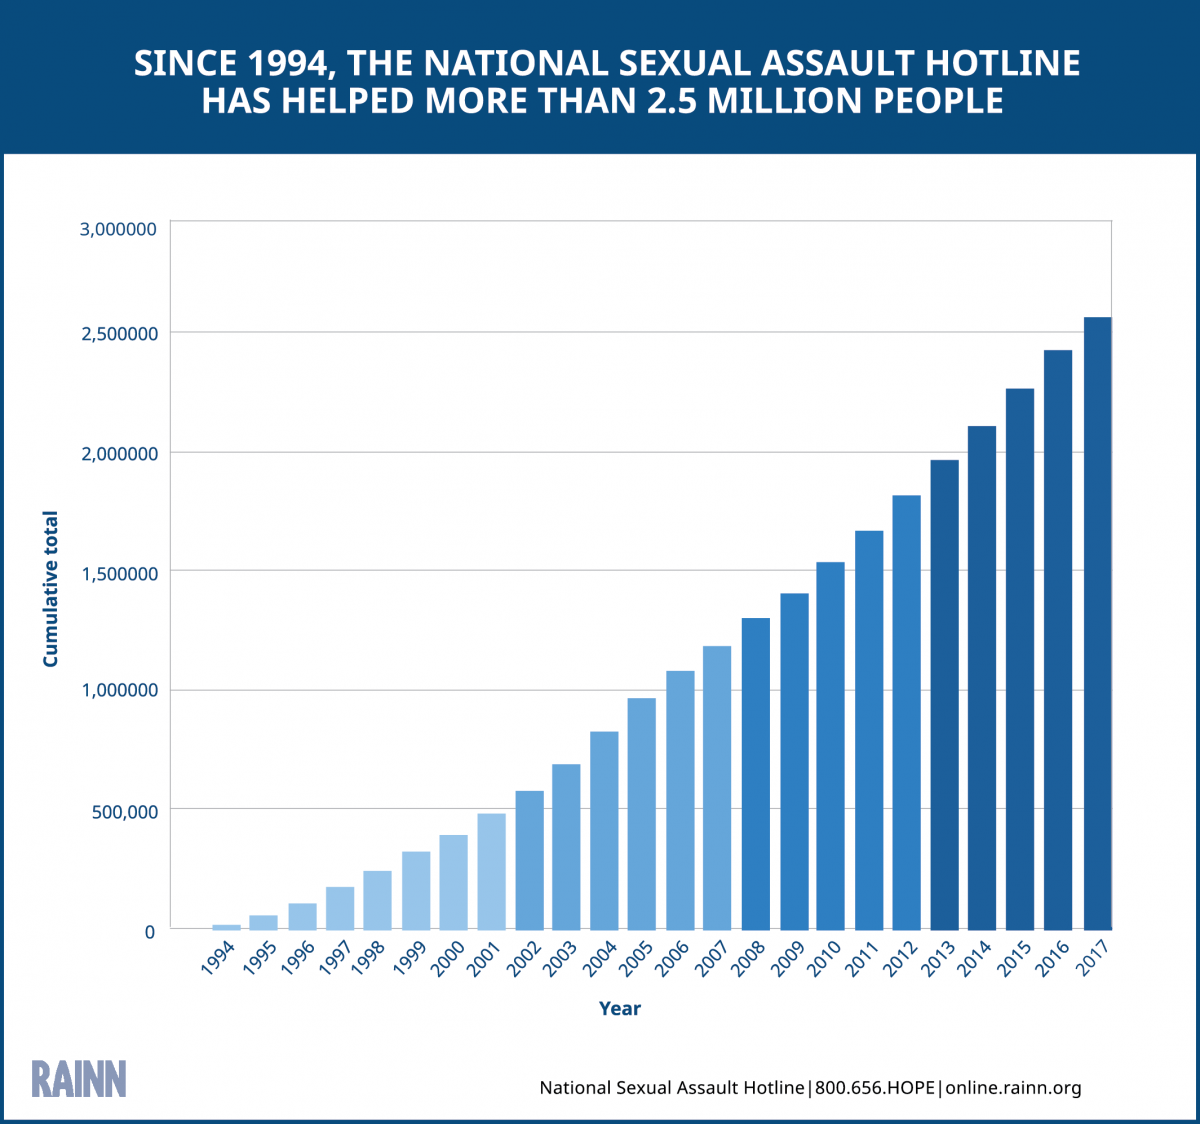 Bar graph that shows the number of people the National Sexual Assault Hotline has helped since 1994. The total number is more than 2.4 million people, and the number of people per year increases steadily over time.